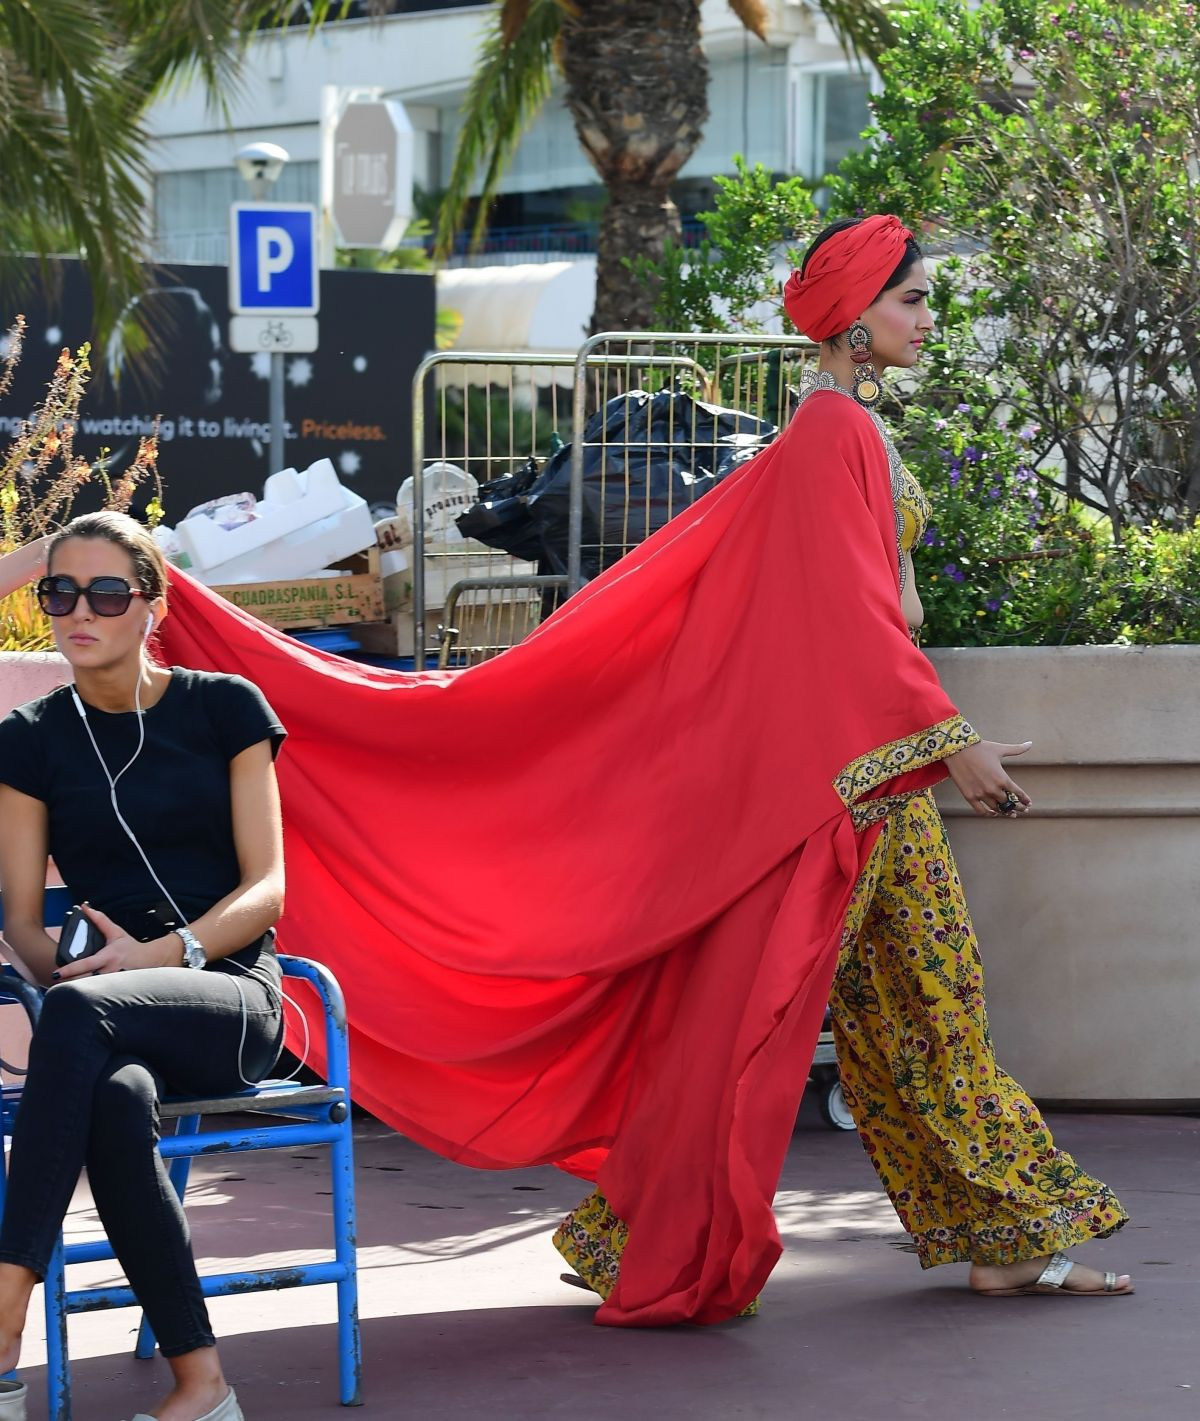 SONAM KAPOOR on the Set of a Photoshoot at a Beach in Cannes 05/22/2017